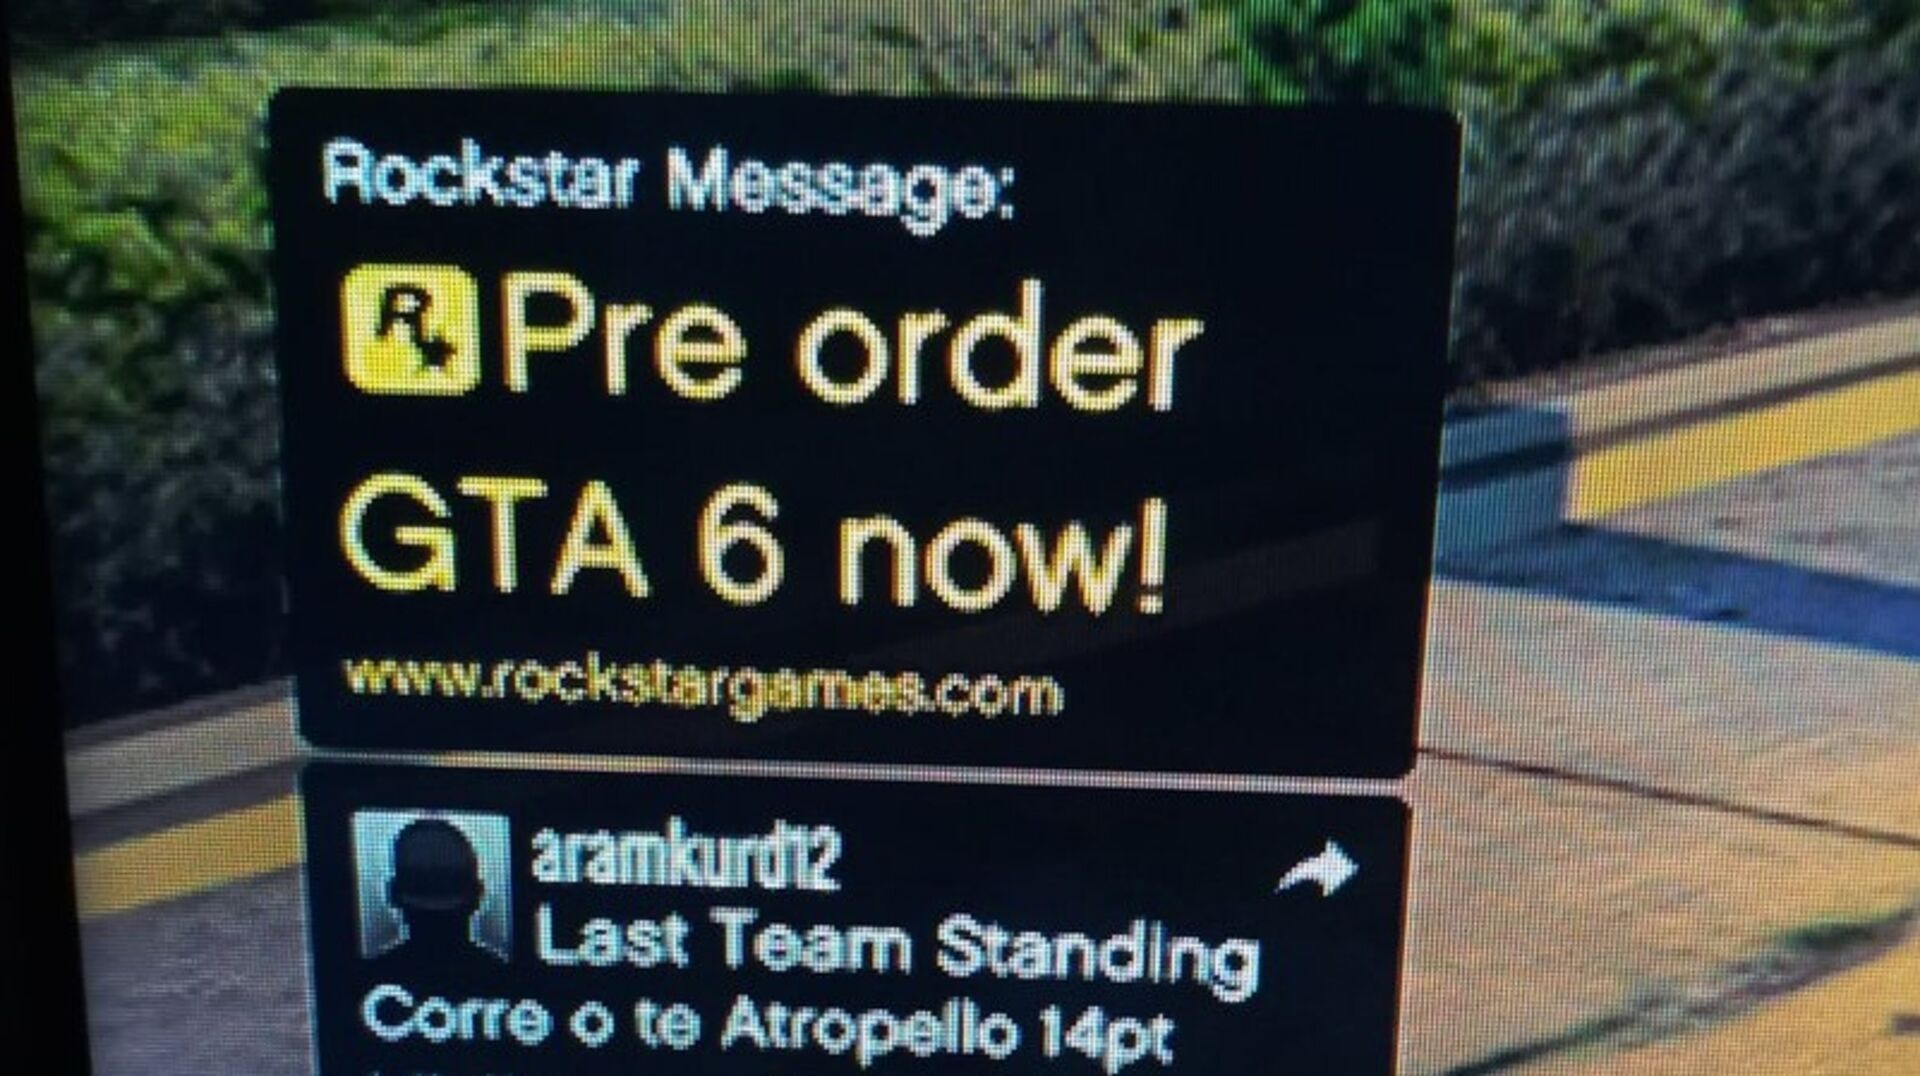 Someone hacked GTA Online to tease a fake GTA6 release date